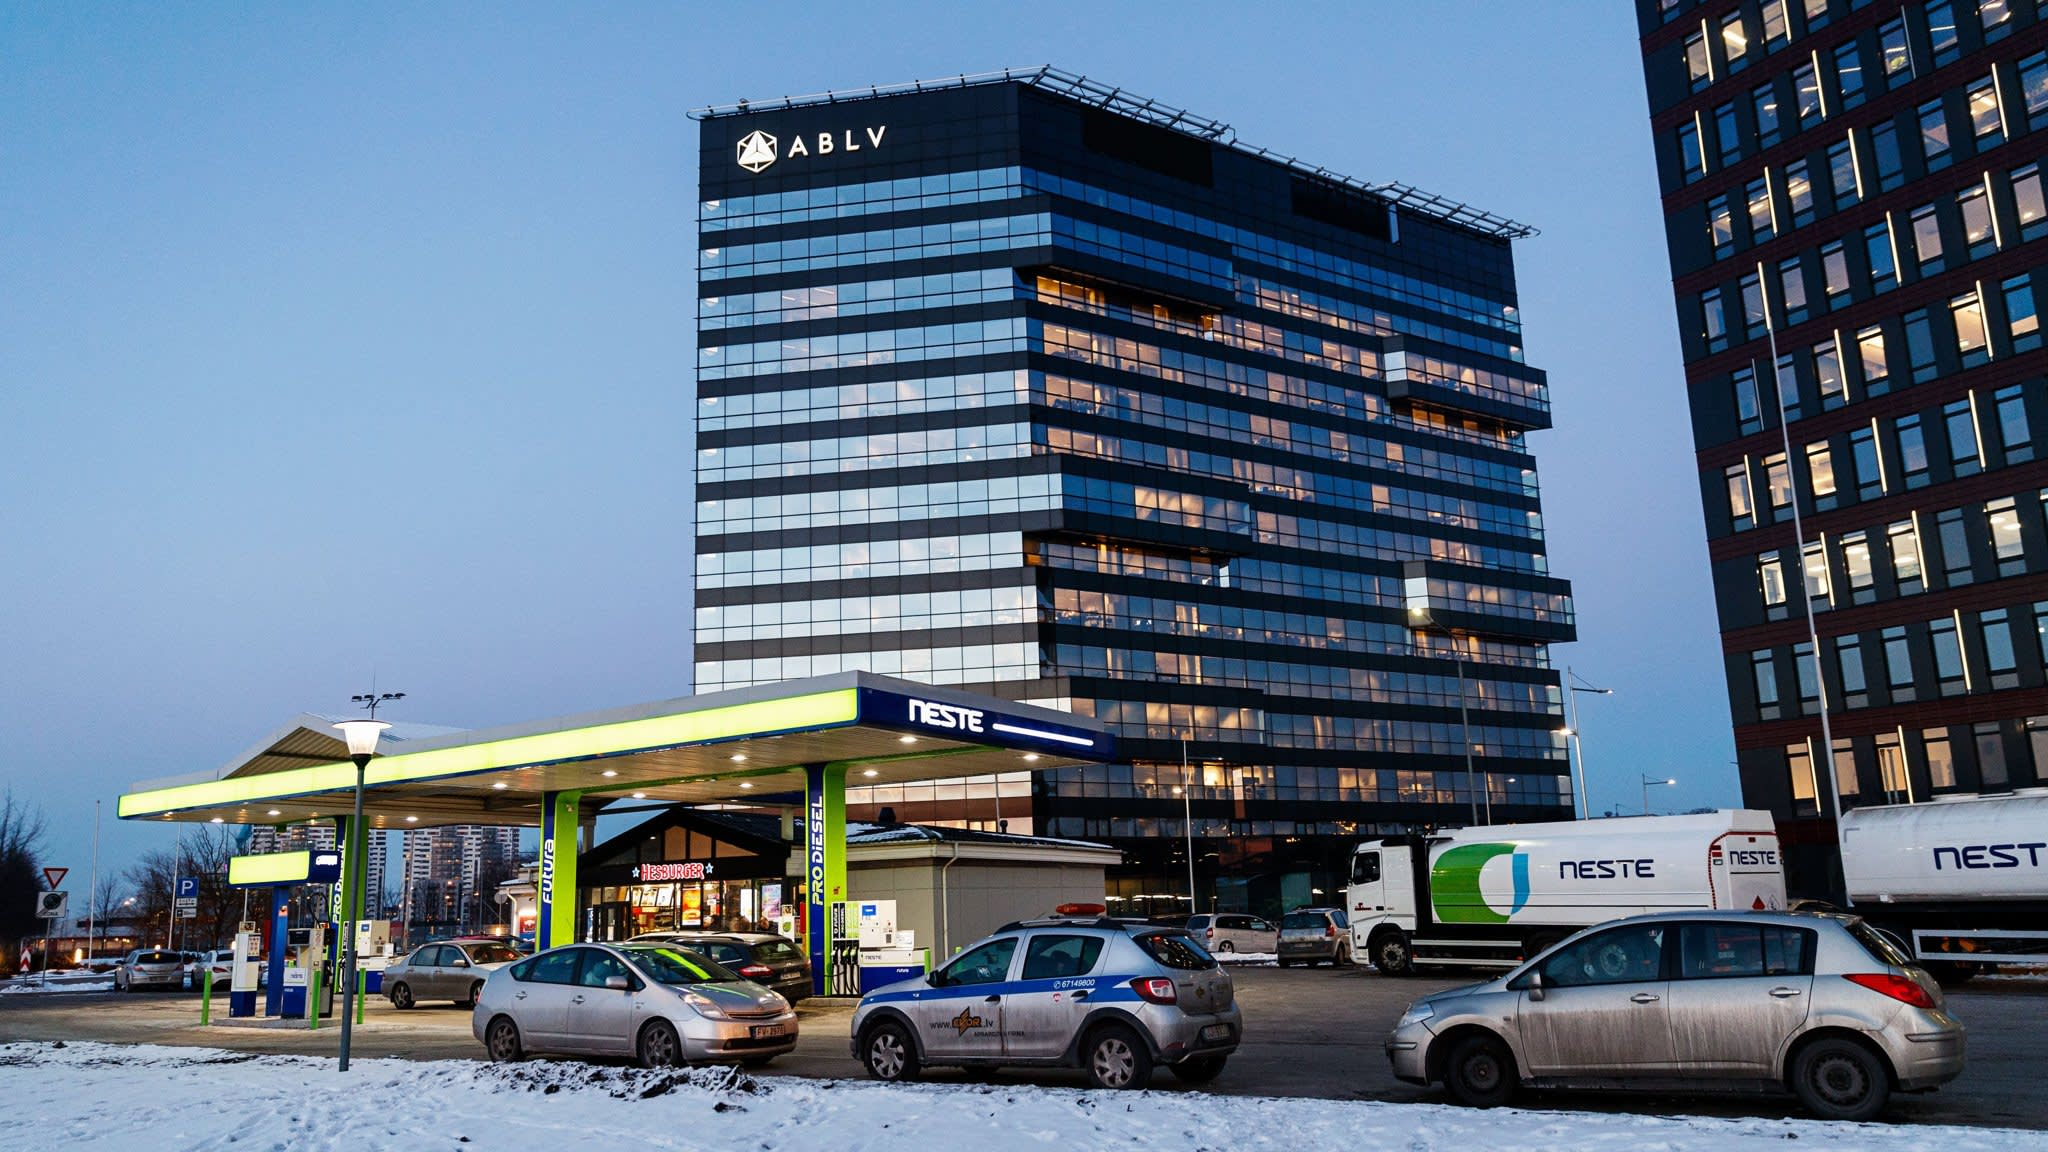 US ire prompts Latvia to root out systemic failures on banking